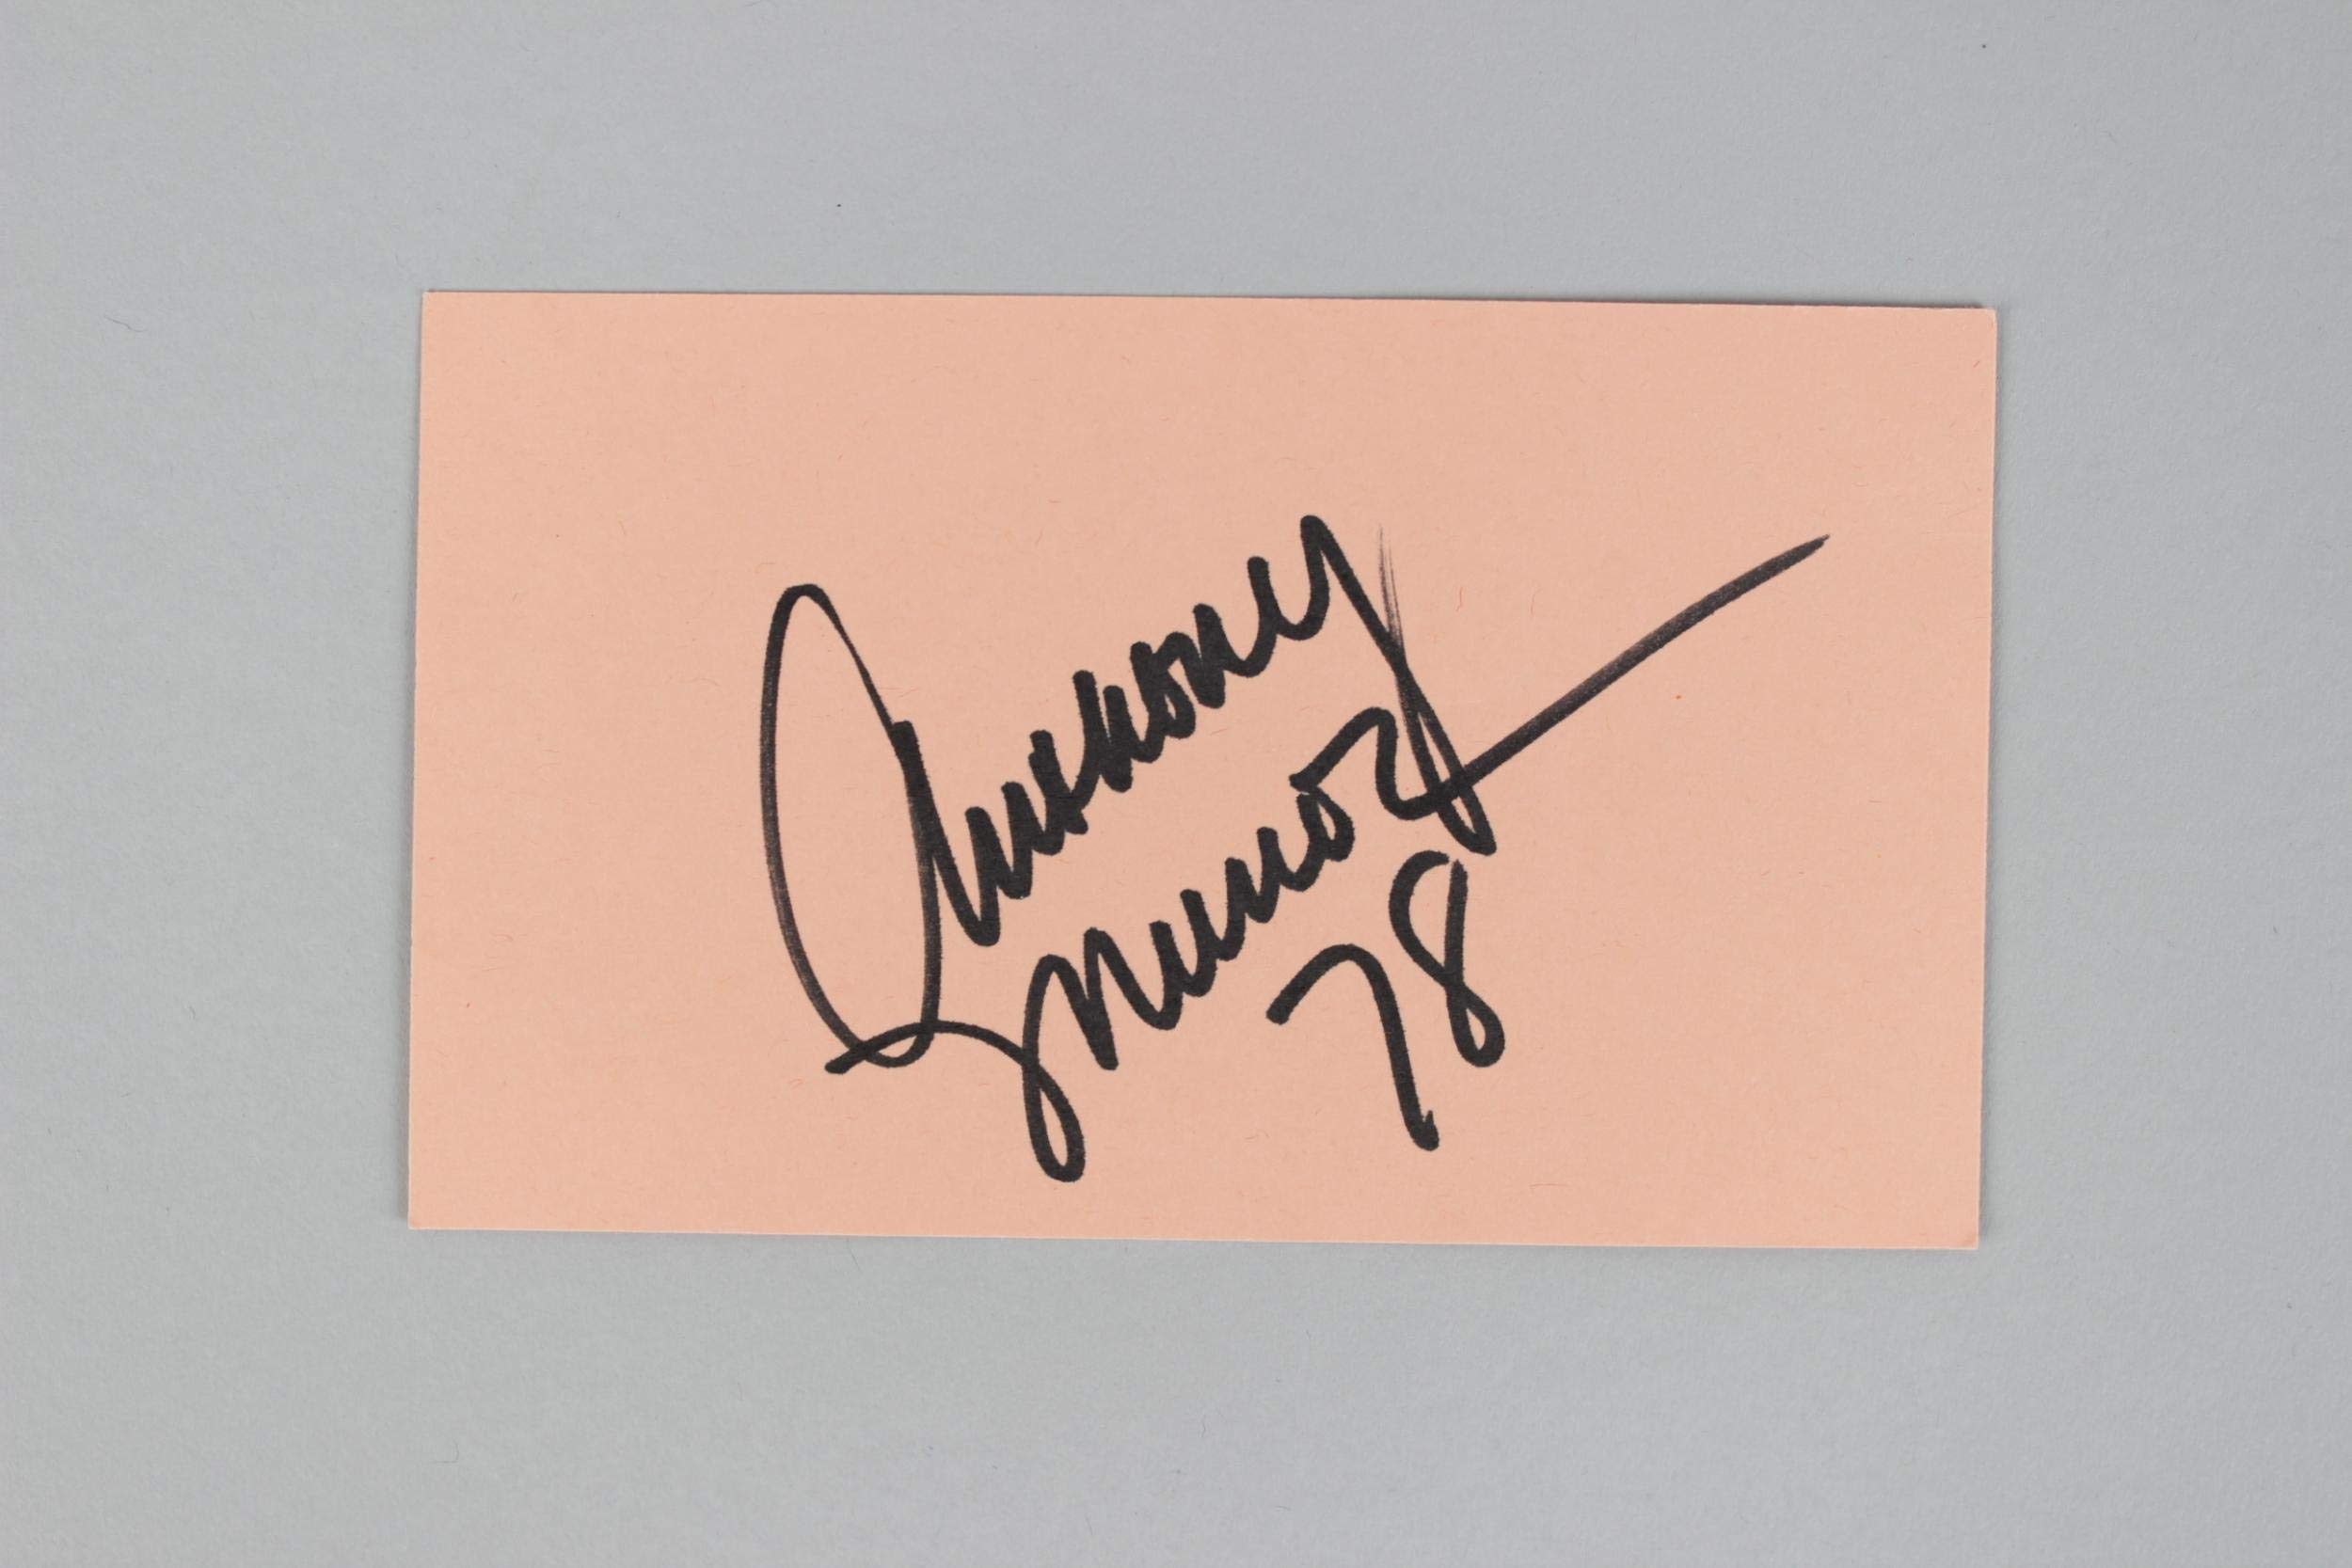 Cincinnati Bengals Anthony Munoz Signed & Inscribed 35 Index Card COA JSA Certified NFL Cut Signatures